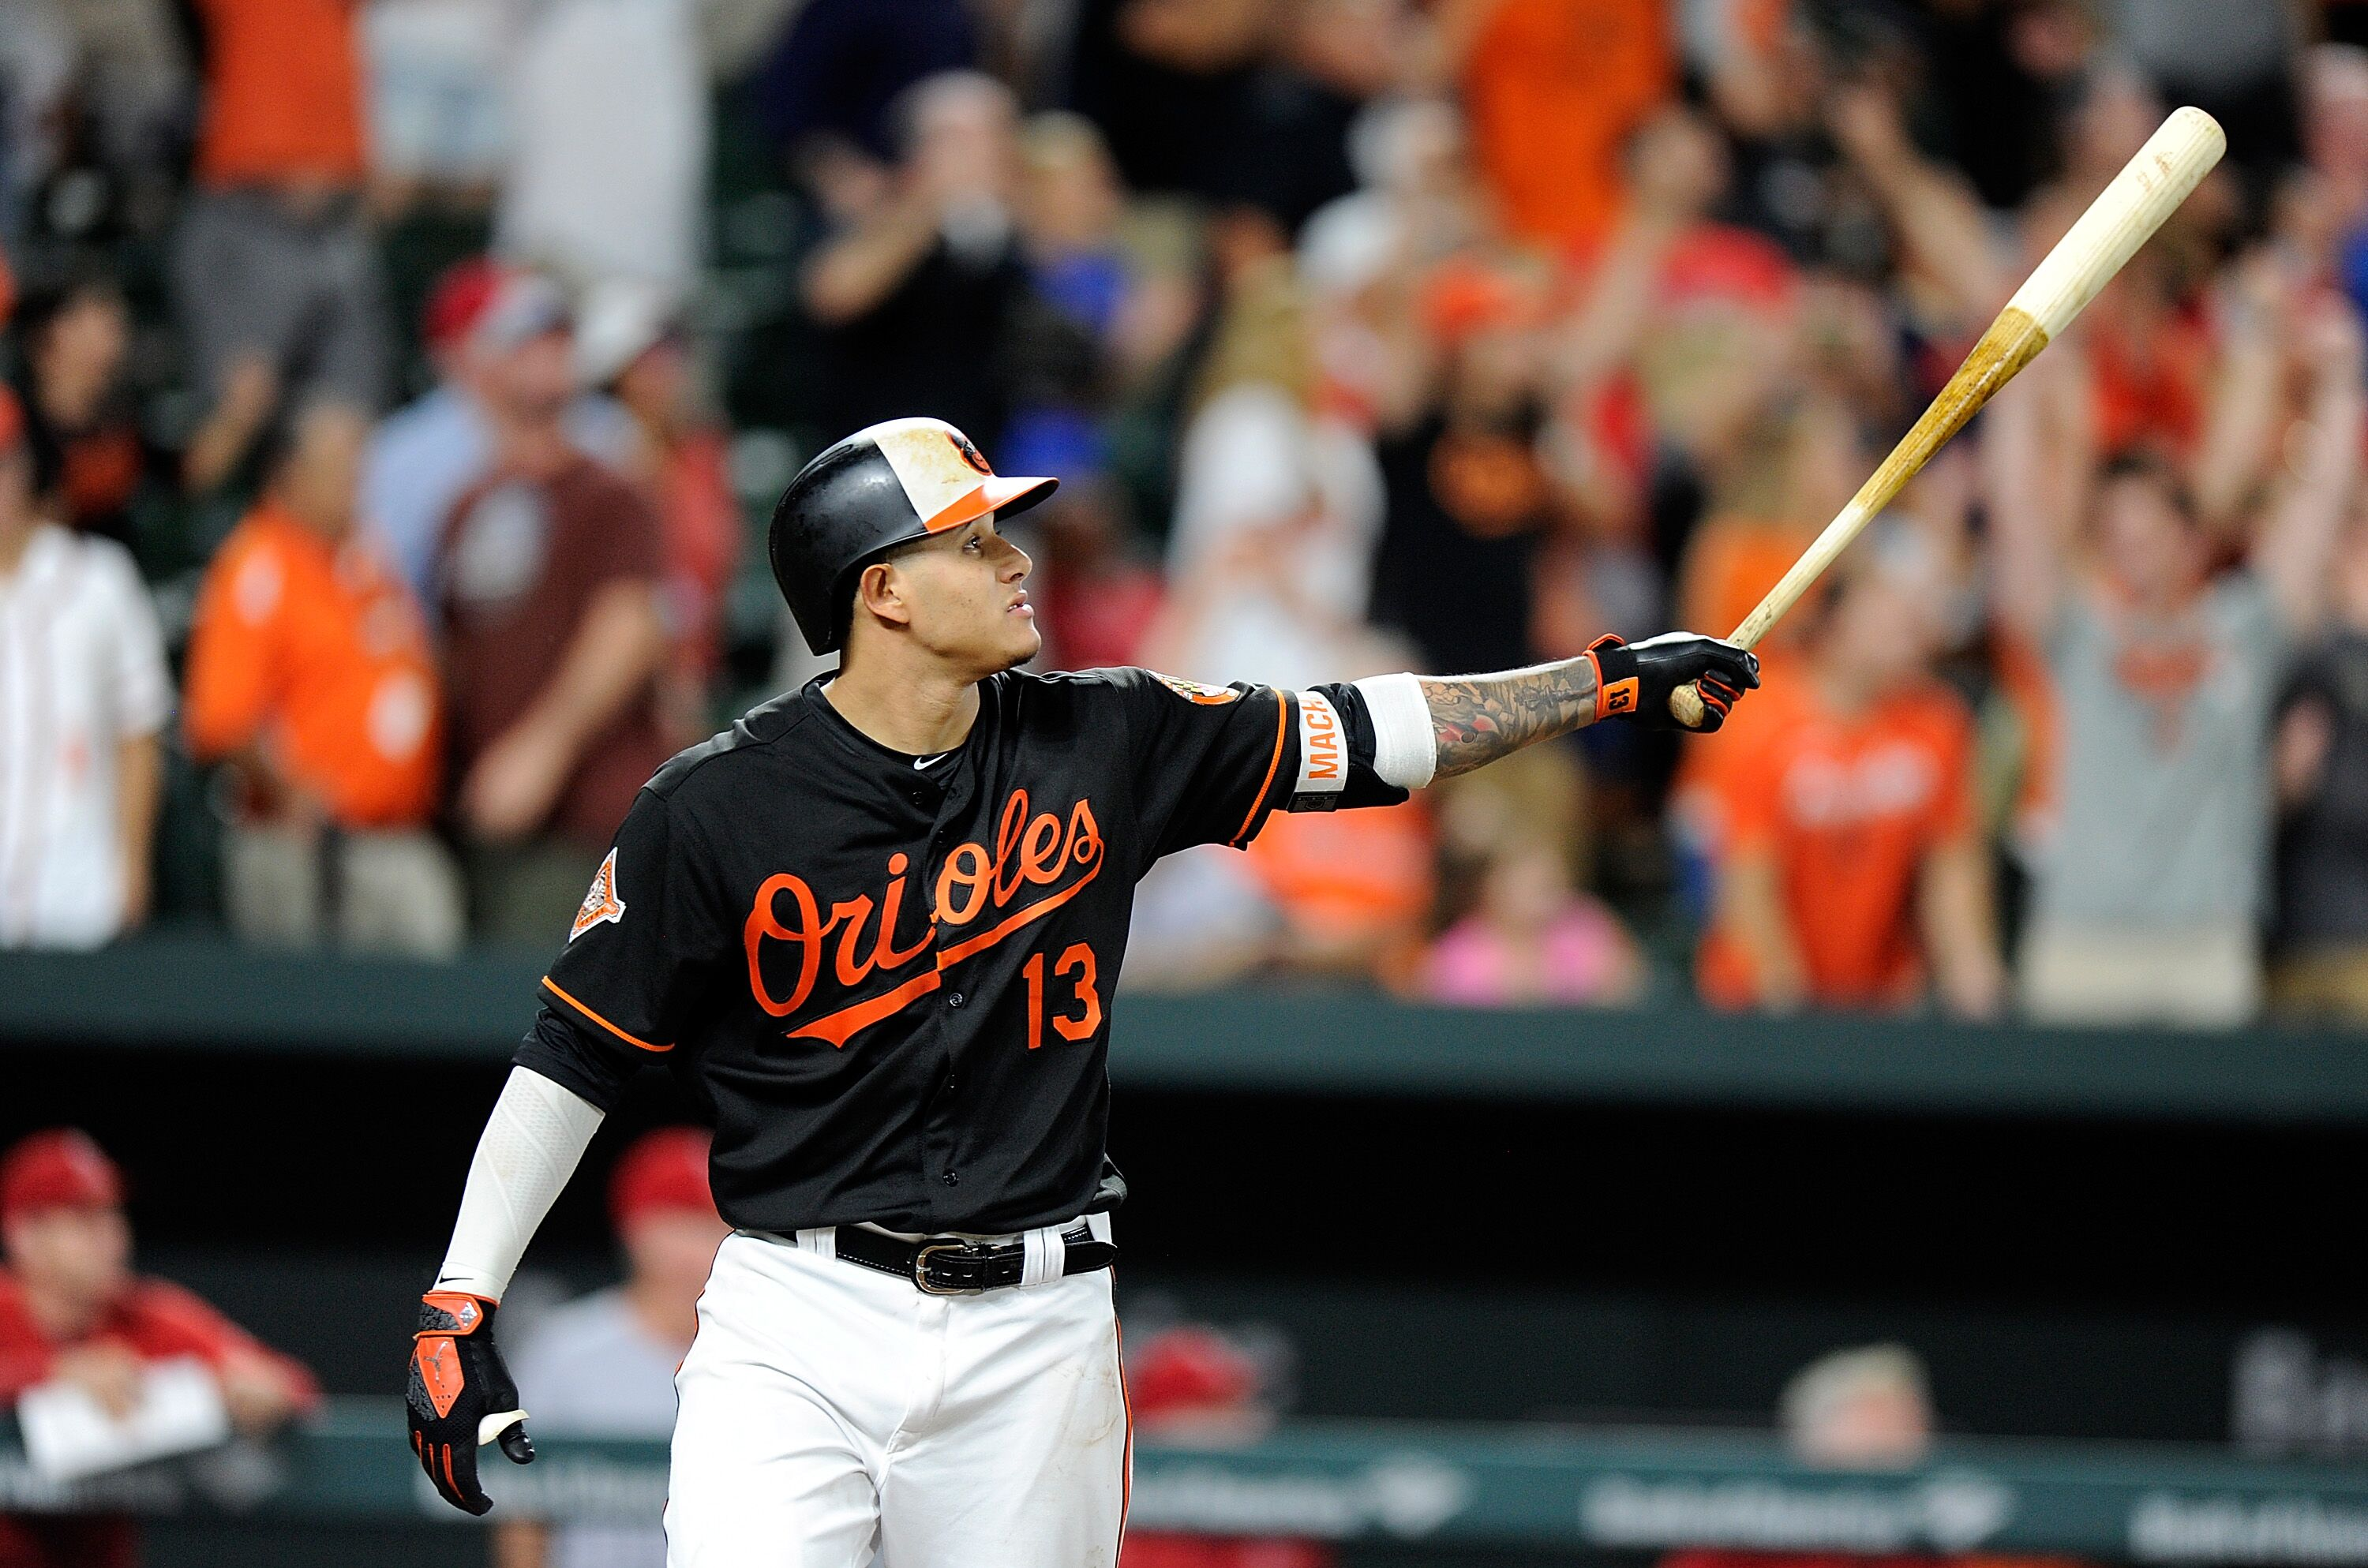 Without The Boston Red Sox Being Tied To Trade Rumors The Latest Is A Report That The Team Has Shown Continued Interested In Acquiring Manny Machado